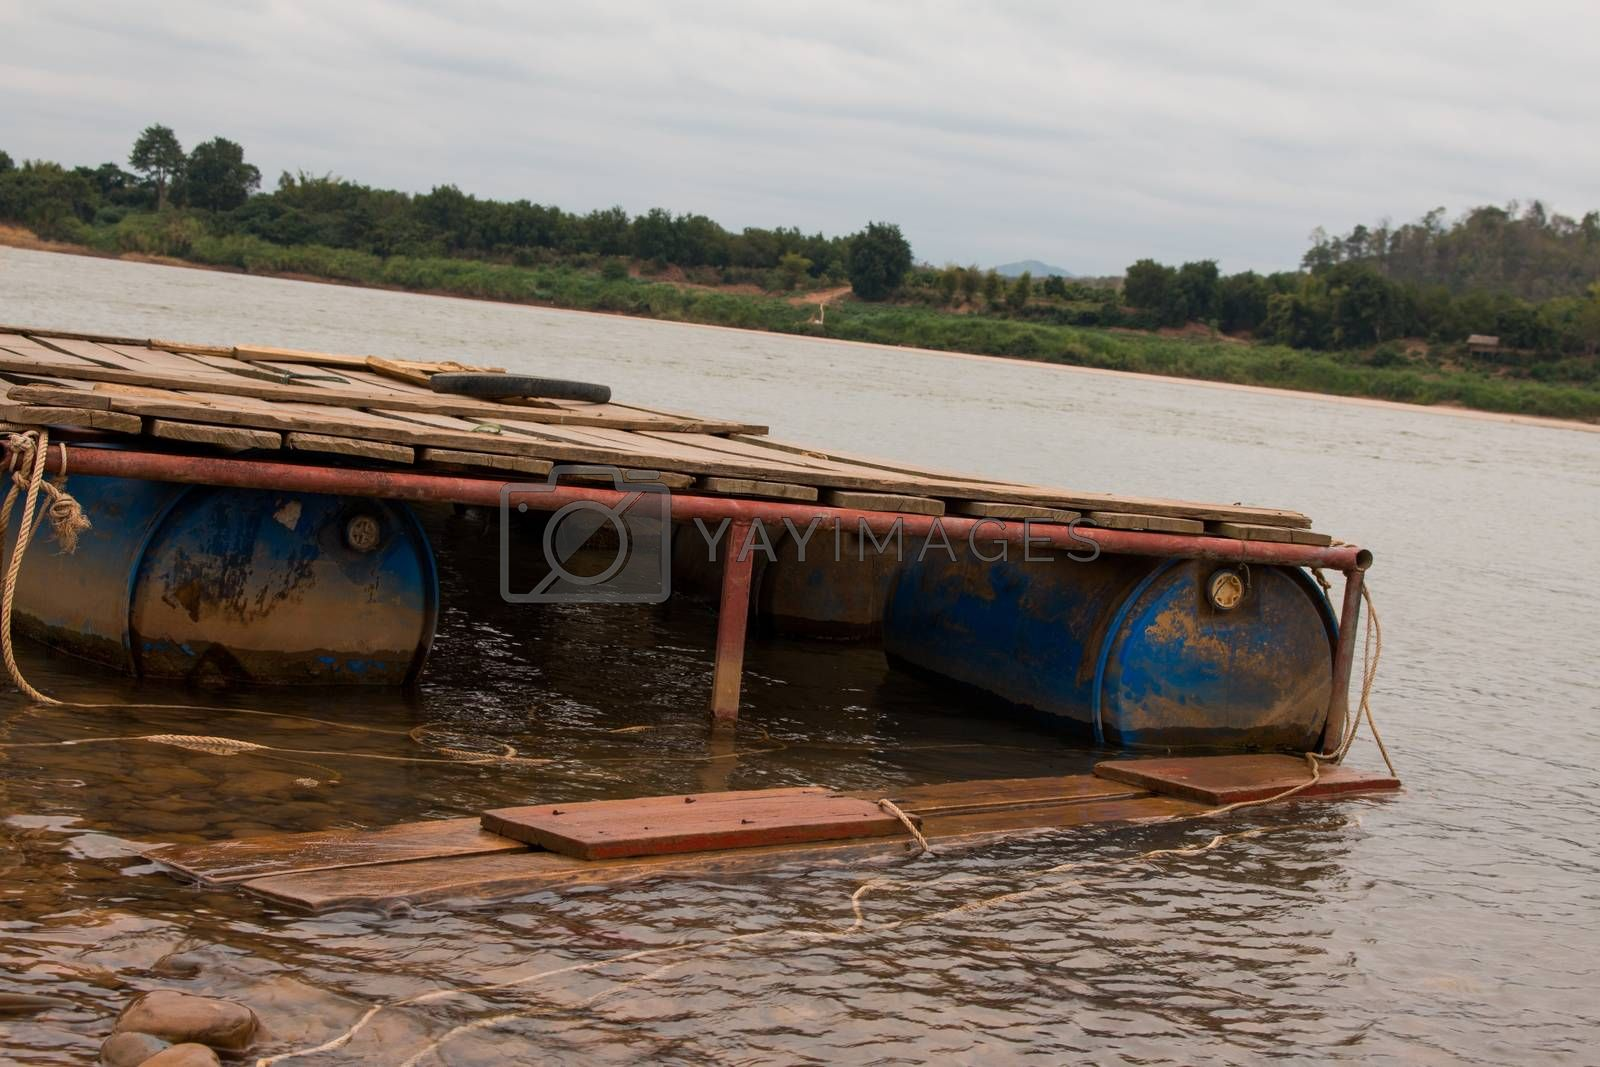 Passenger pontoon boat damaged